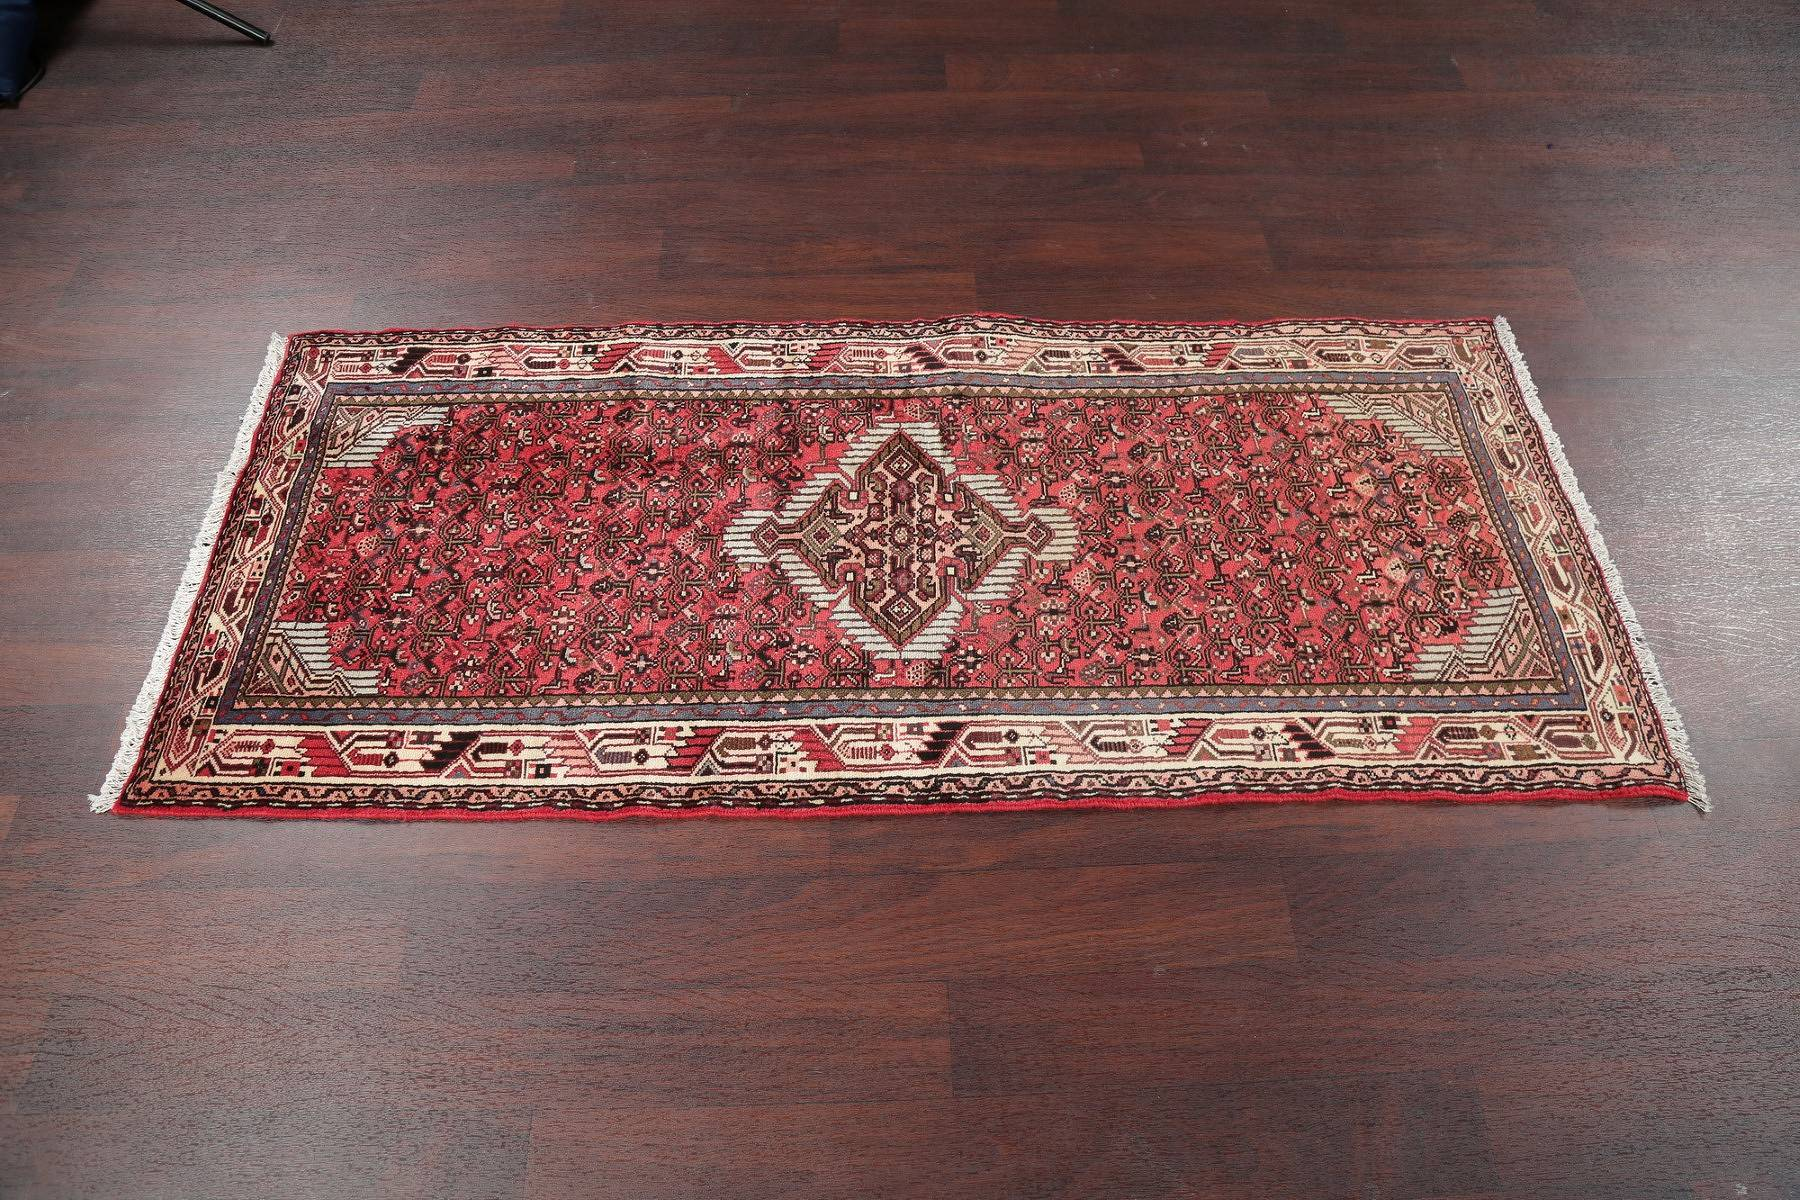 Geometric Red Hamedan Persian Hand-Knotted Runner Rug Wool 3x6